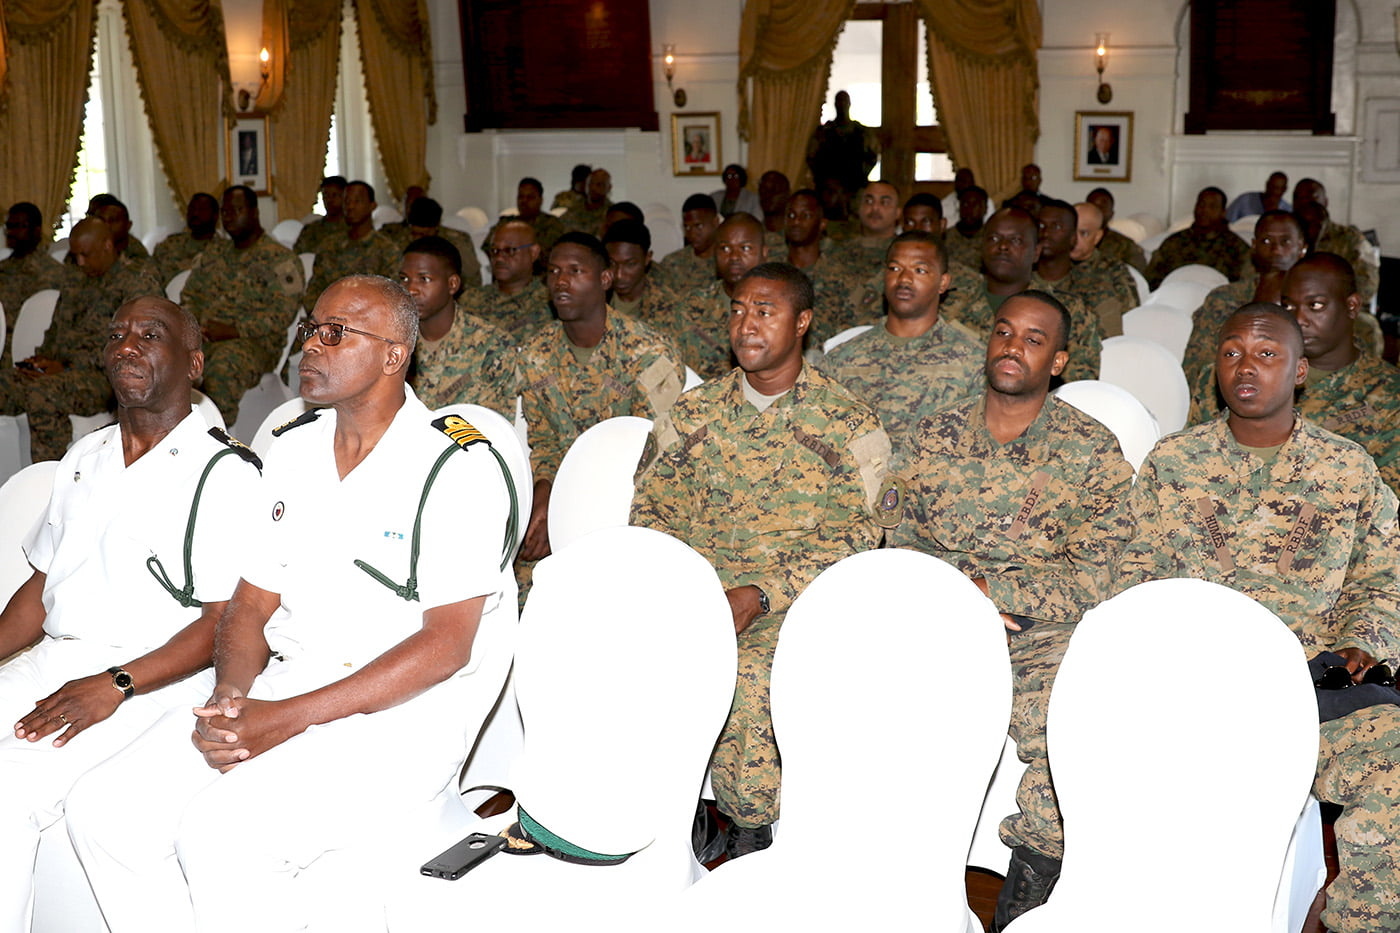 Prayer and healing service at Government House for RBDF Marines